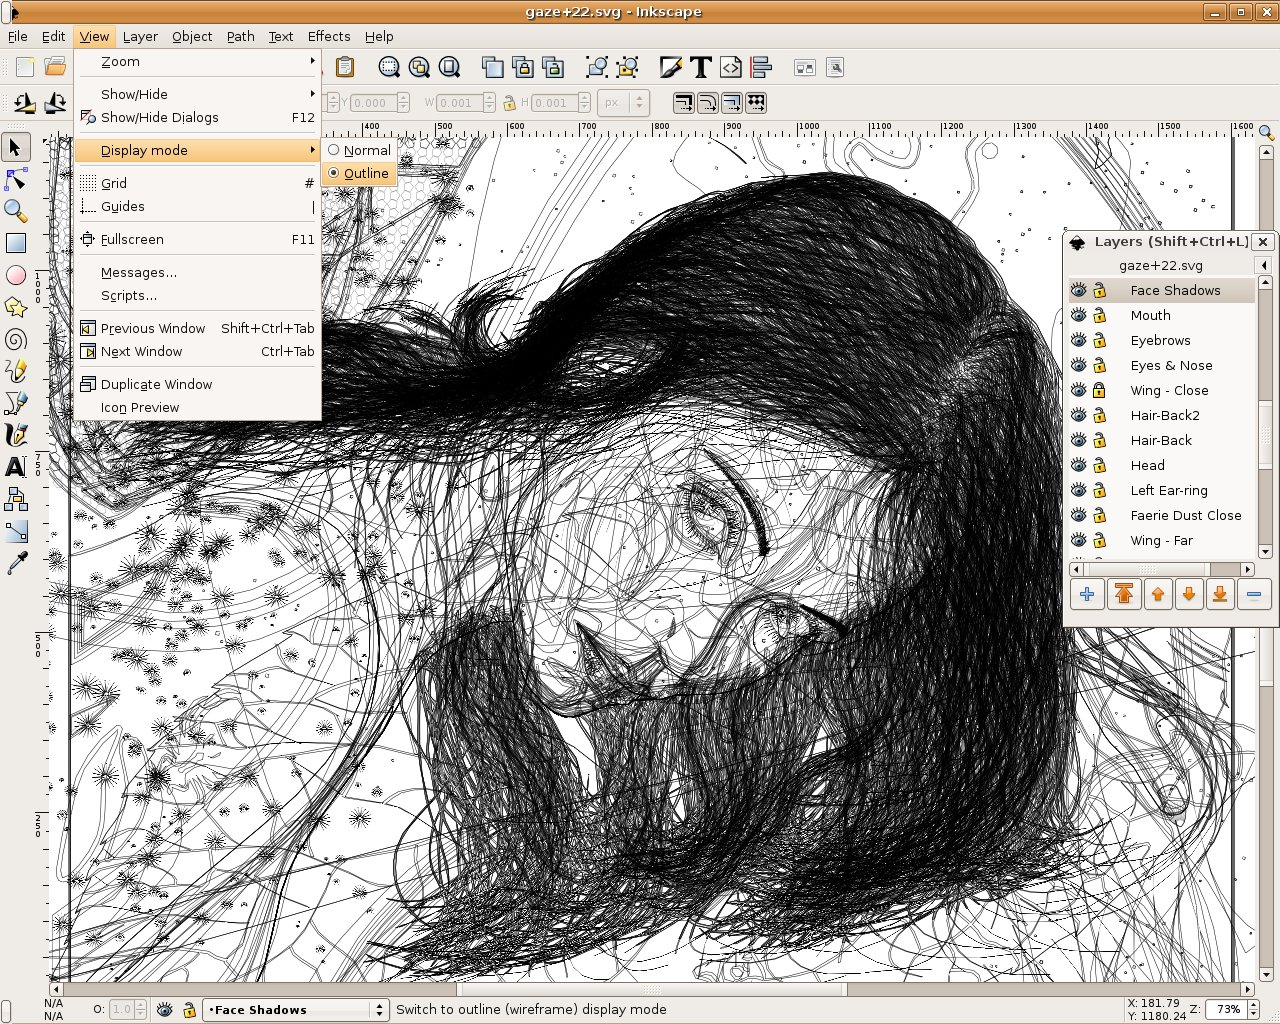 1280x1024 Download Inkscape 0.48.4 1 Open Source Vector Graphics Editor